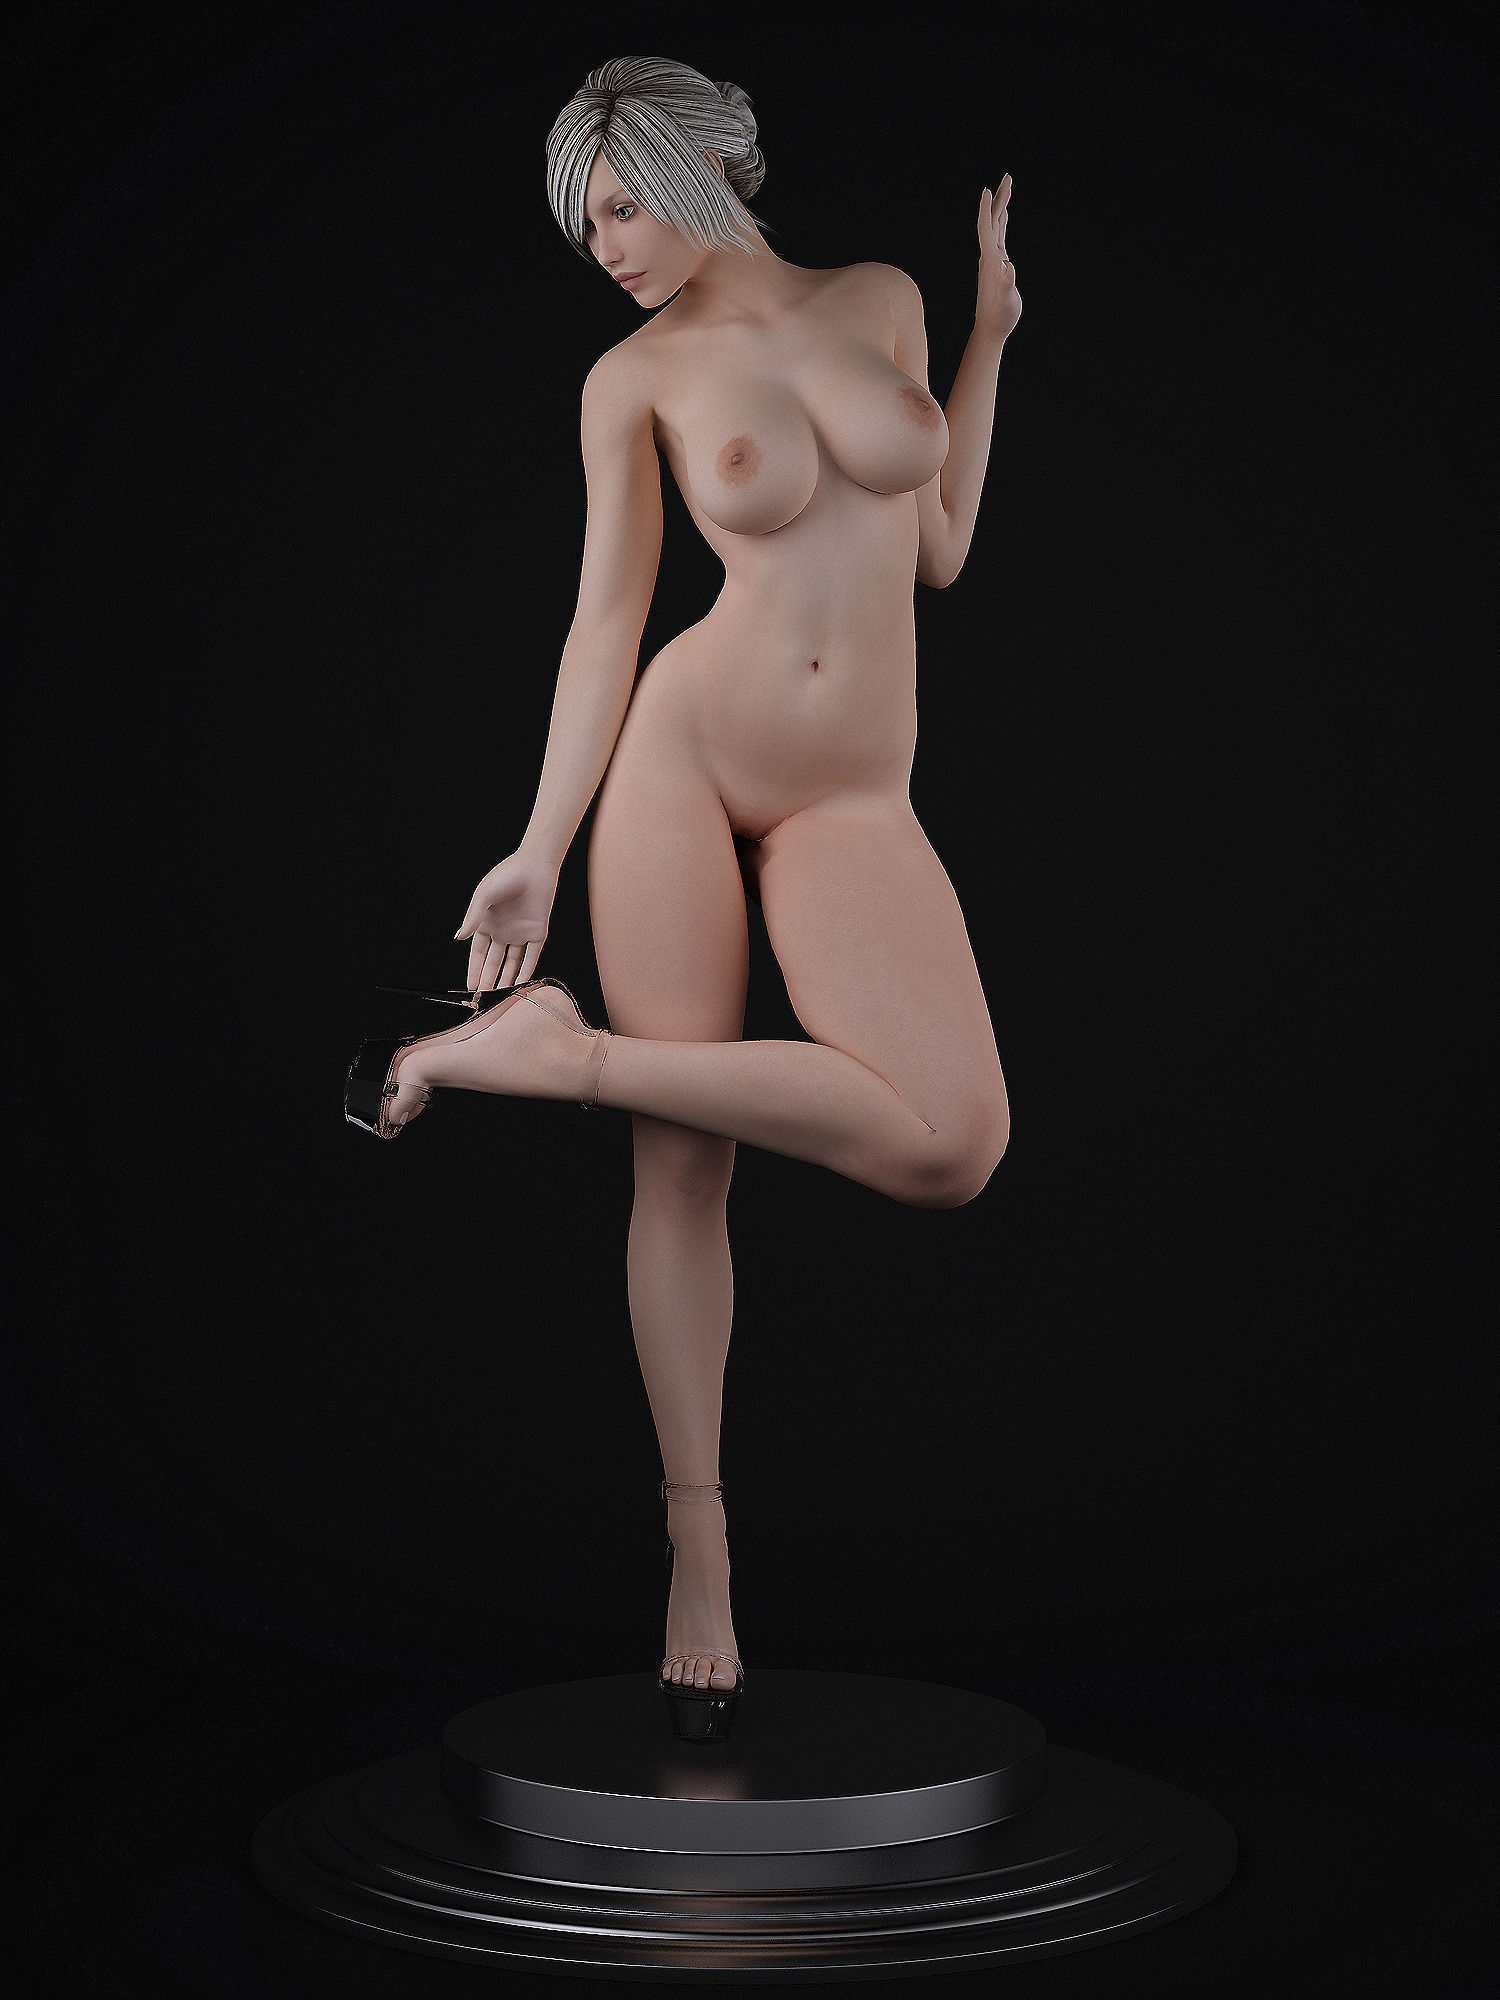 naked lady with vagina and penis